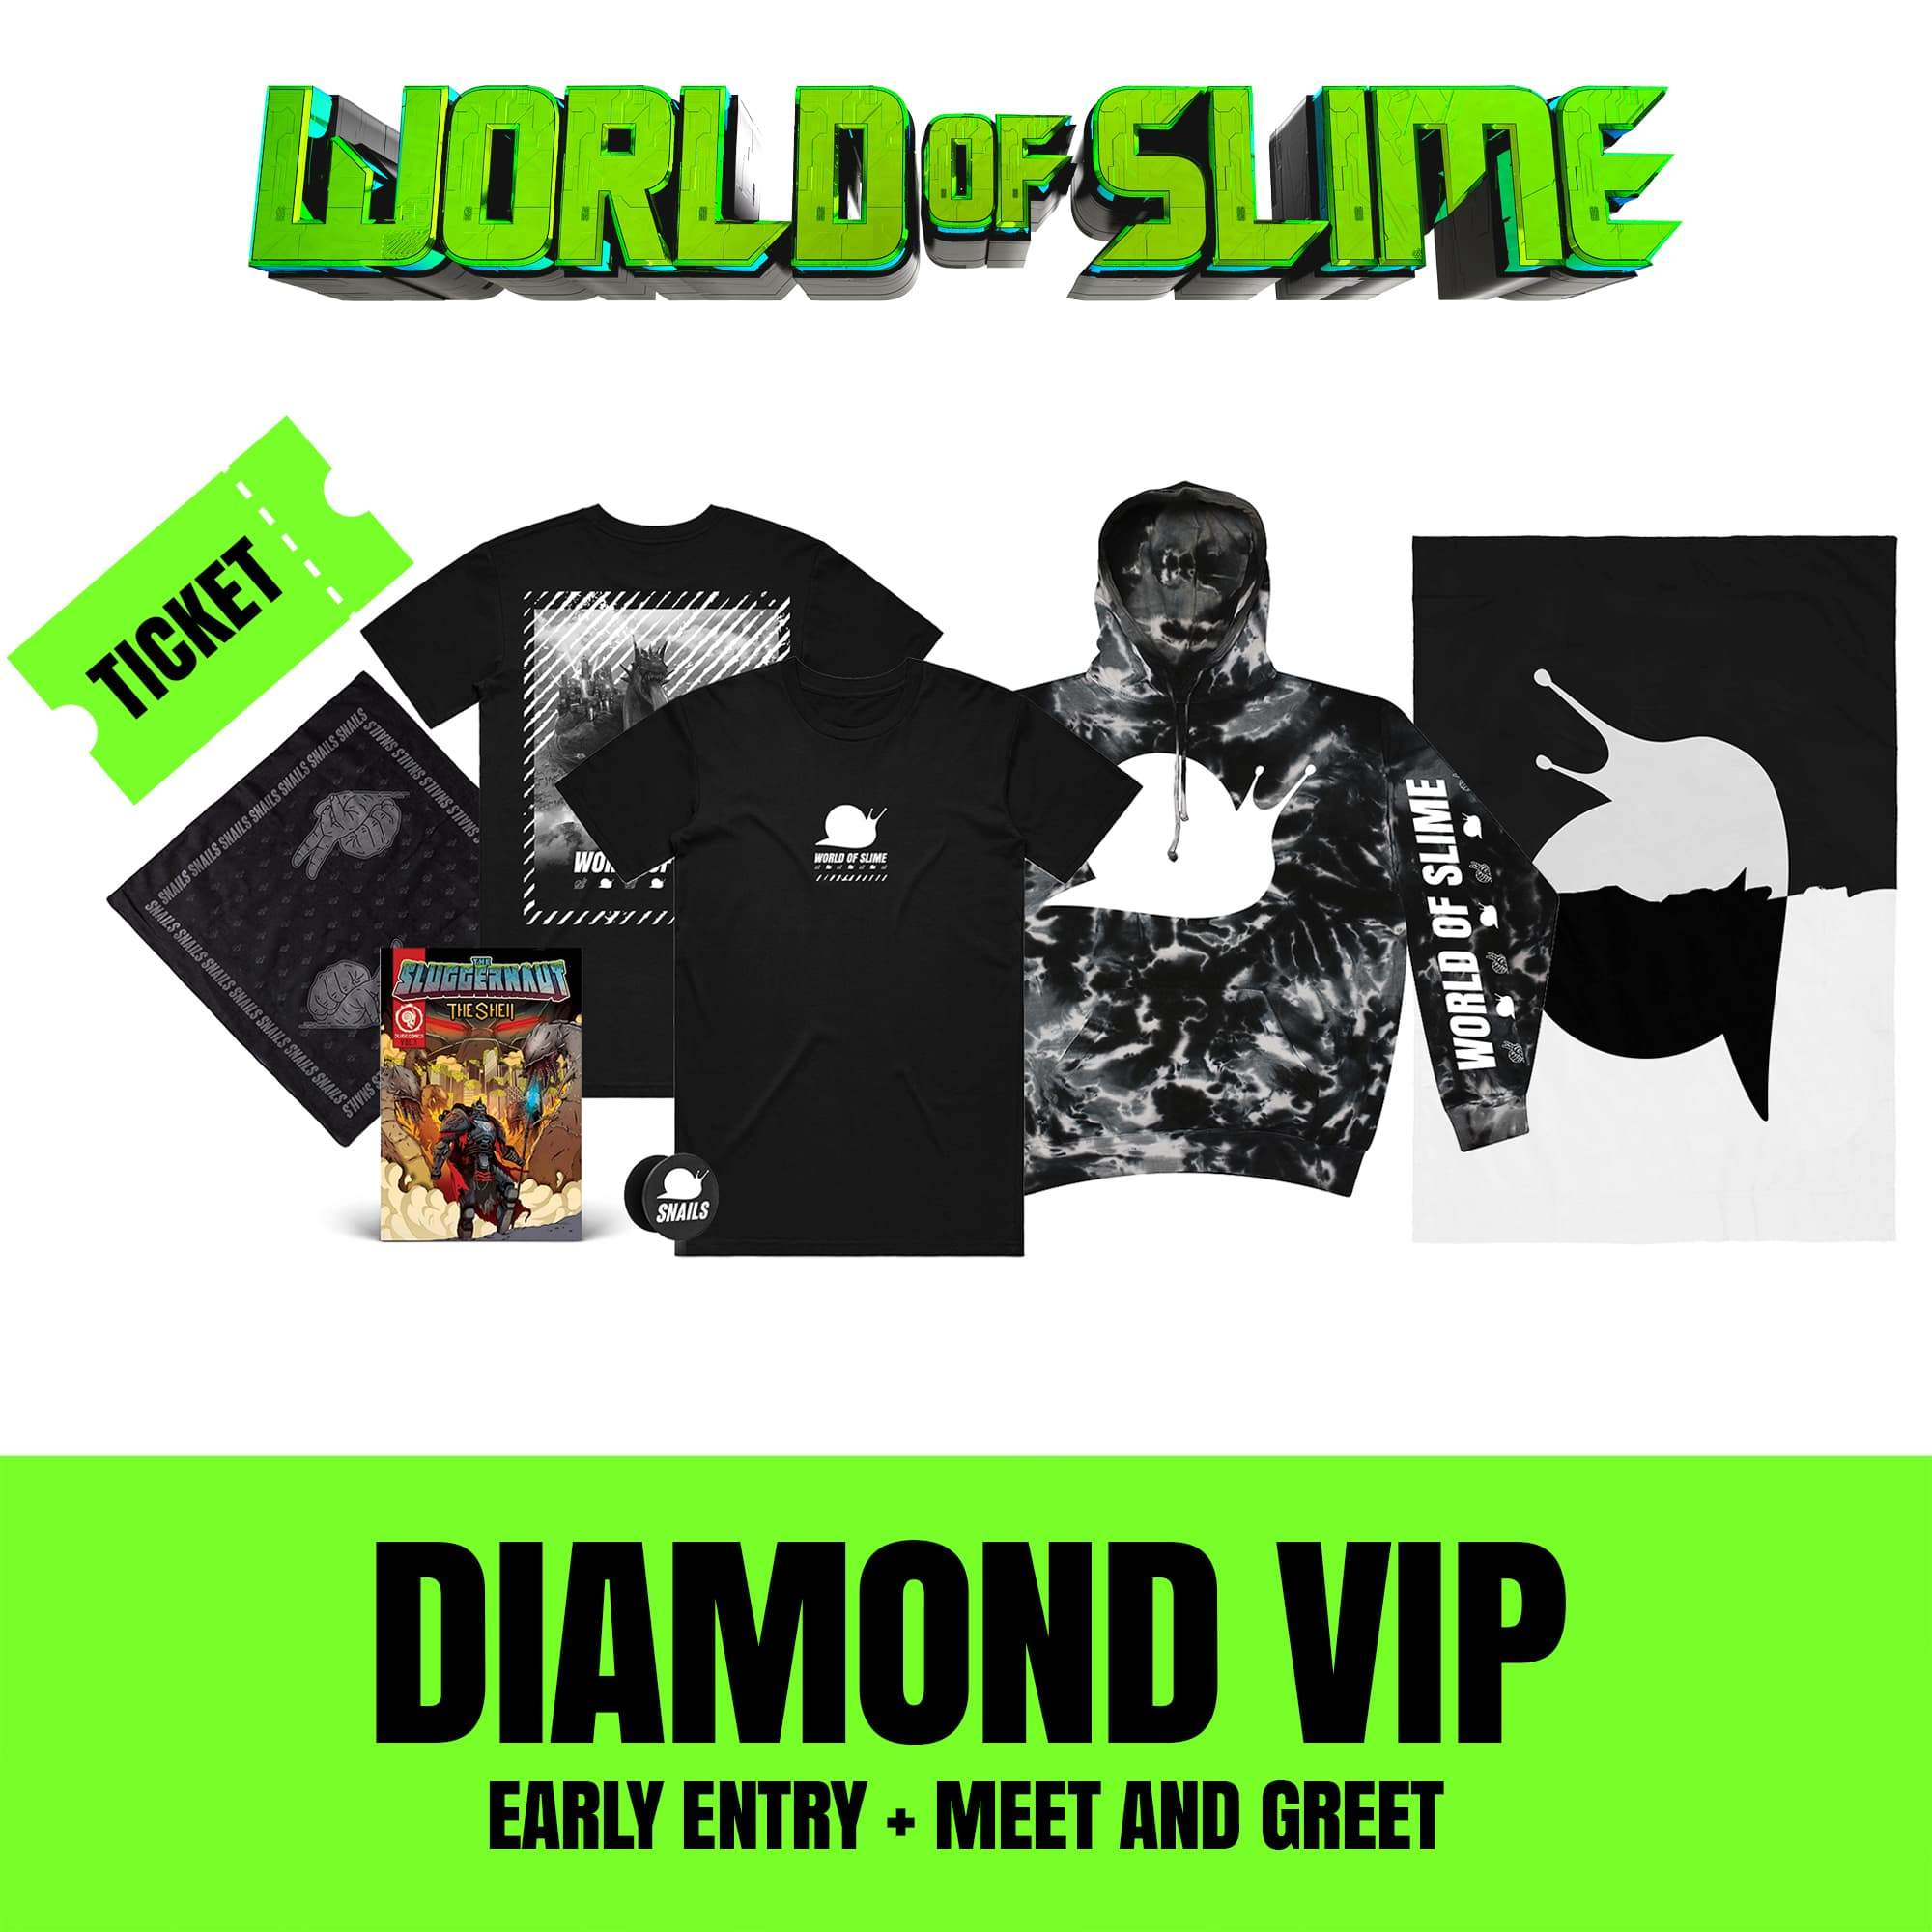 World Of Slime Tour - St. Louis, MO - 12/02